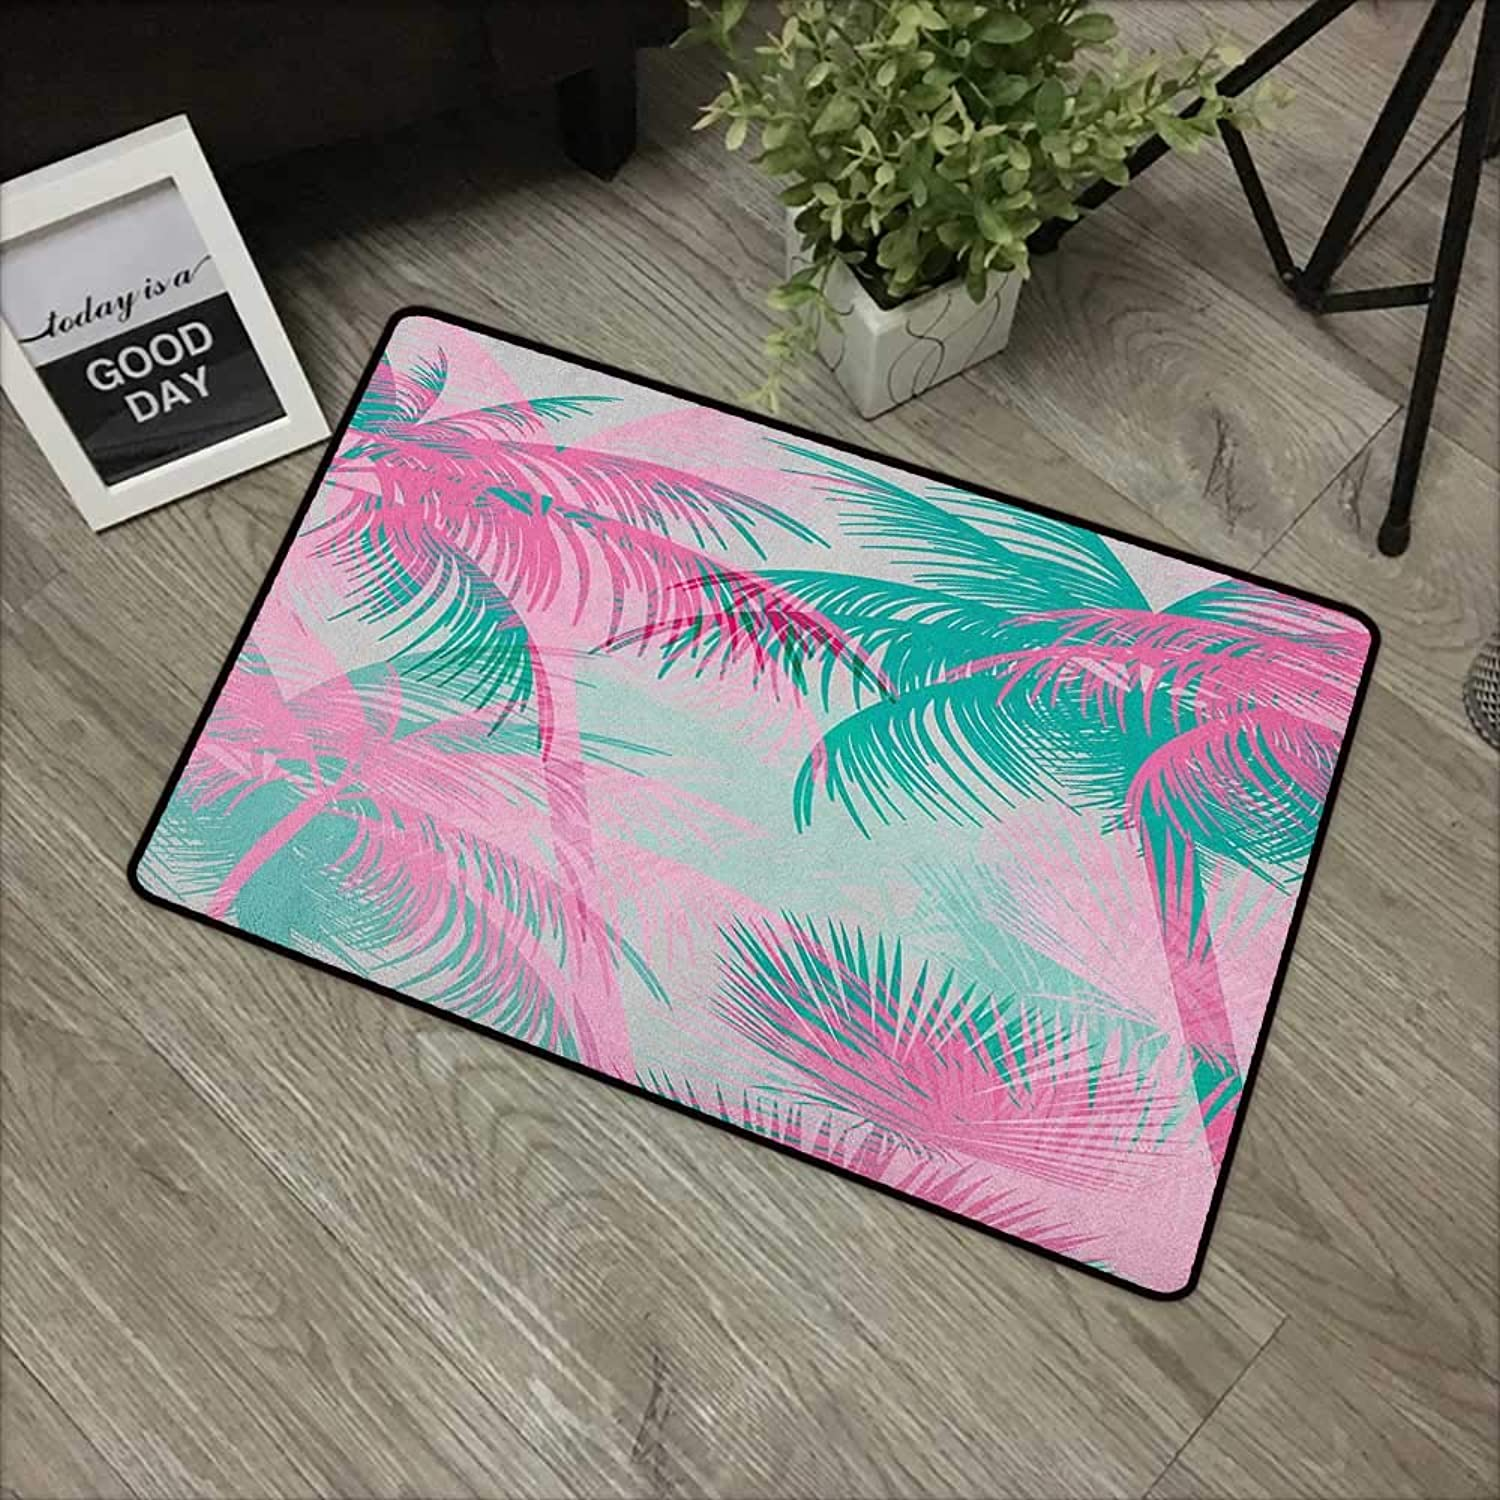 Pool anti-slip door mat W35 x L59 INCH Palm Leaf,Beach Party Theme Vibrant Composition with Pink and Green Trees Vintage, Pink Teal White Natural dye printing to predect your baby's skin Non-slip Door